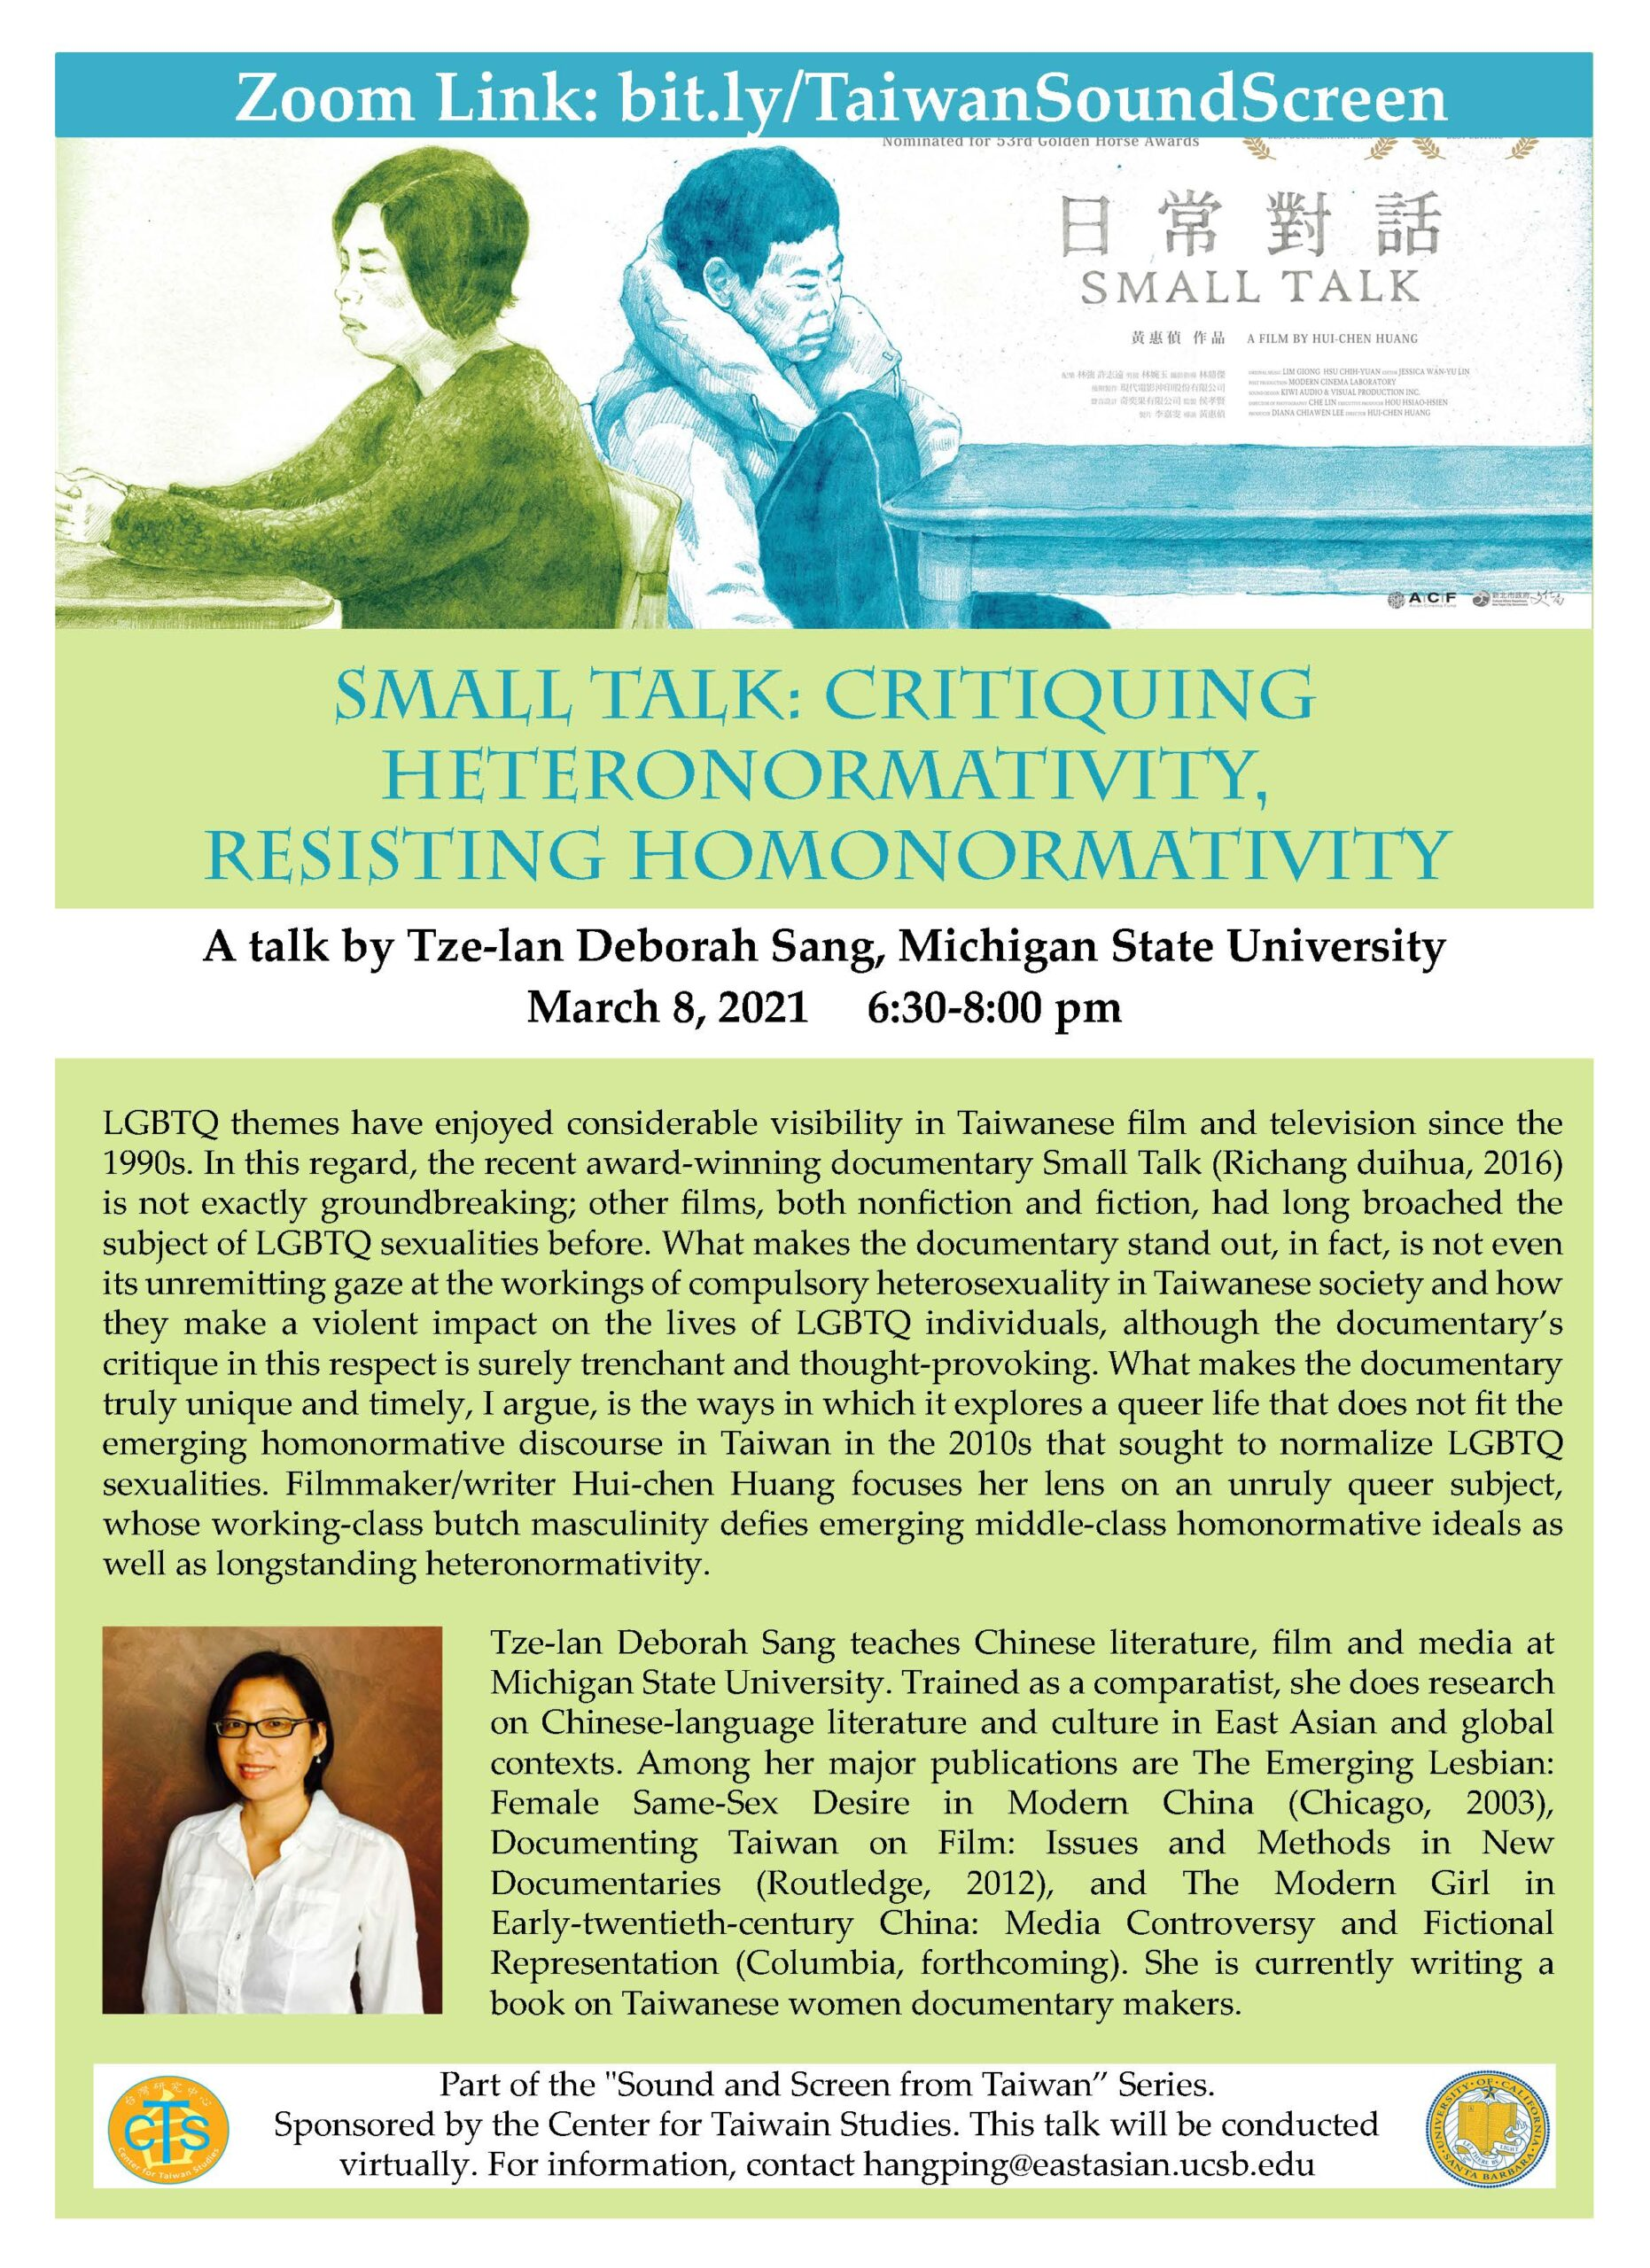 """Flyer for """"Small Talk: Critiquing Heteronormativity, Resisting Heteronormativity"""" by Tze-Ian Deborah Sang on 3/8/21 at 6:30-8:00PM"""